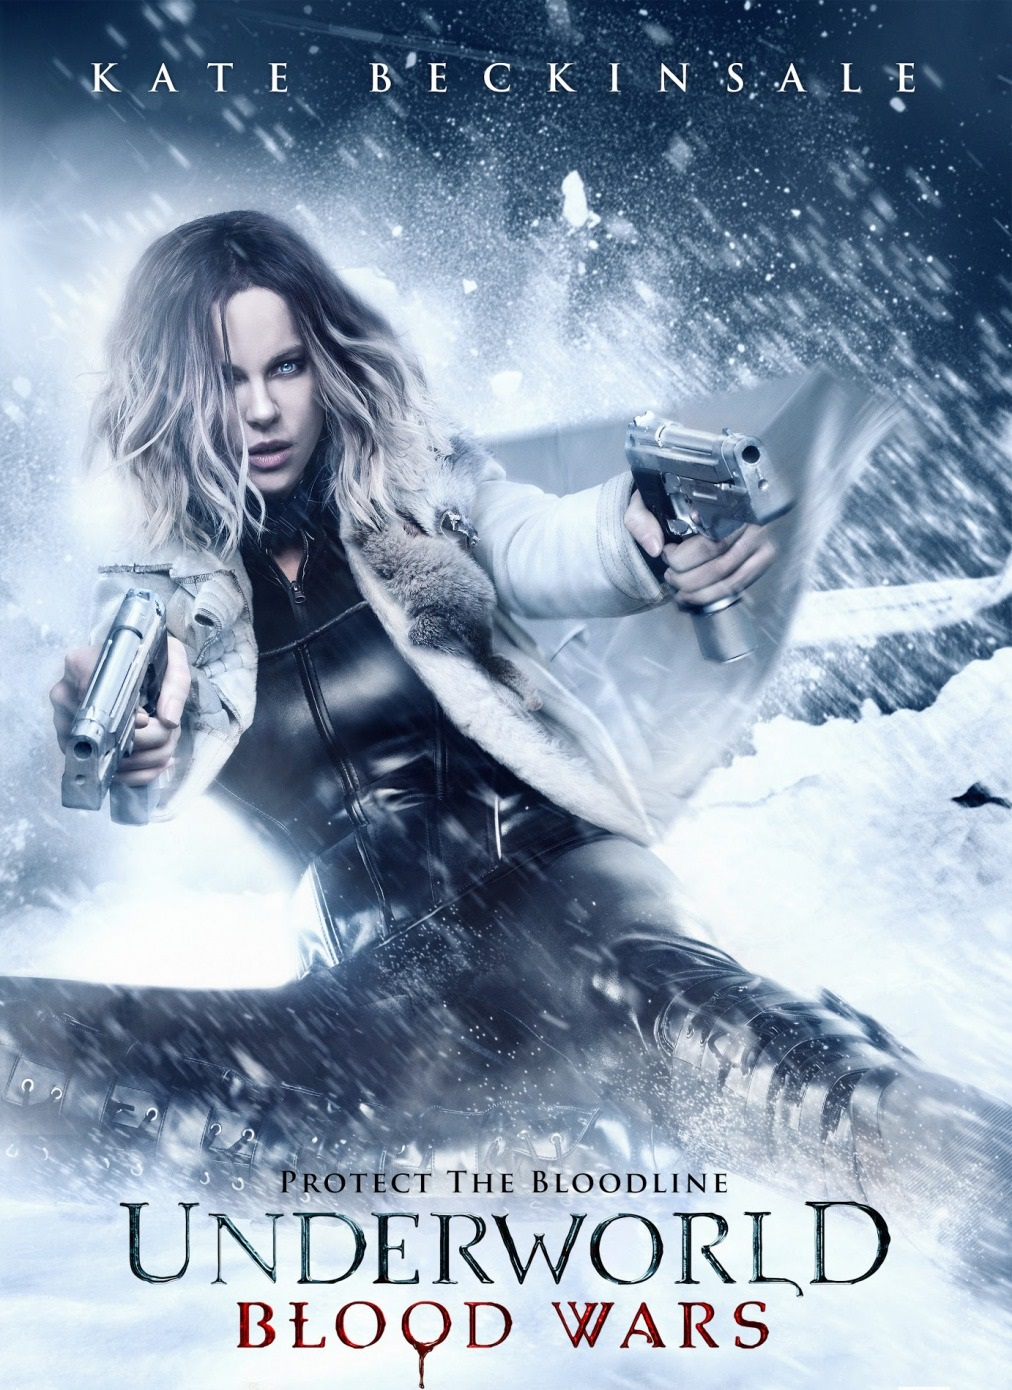 underworld_blood_wars_ver7_xlg.jpg